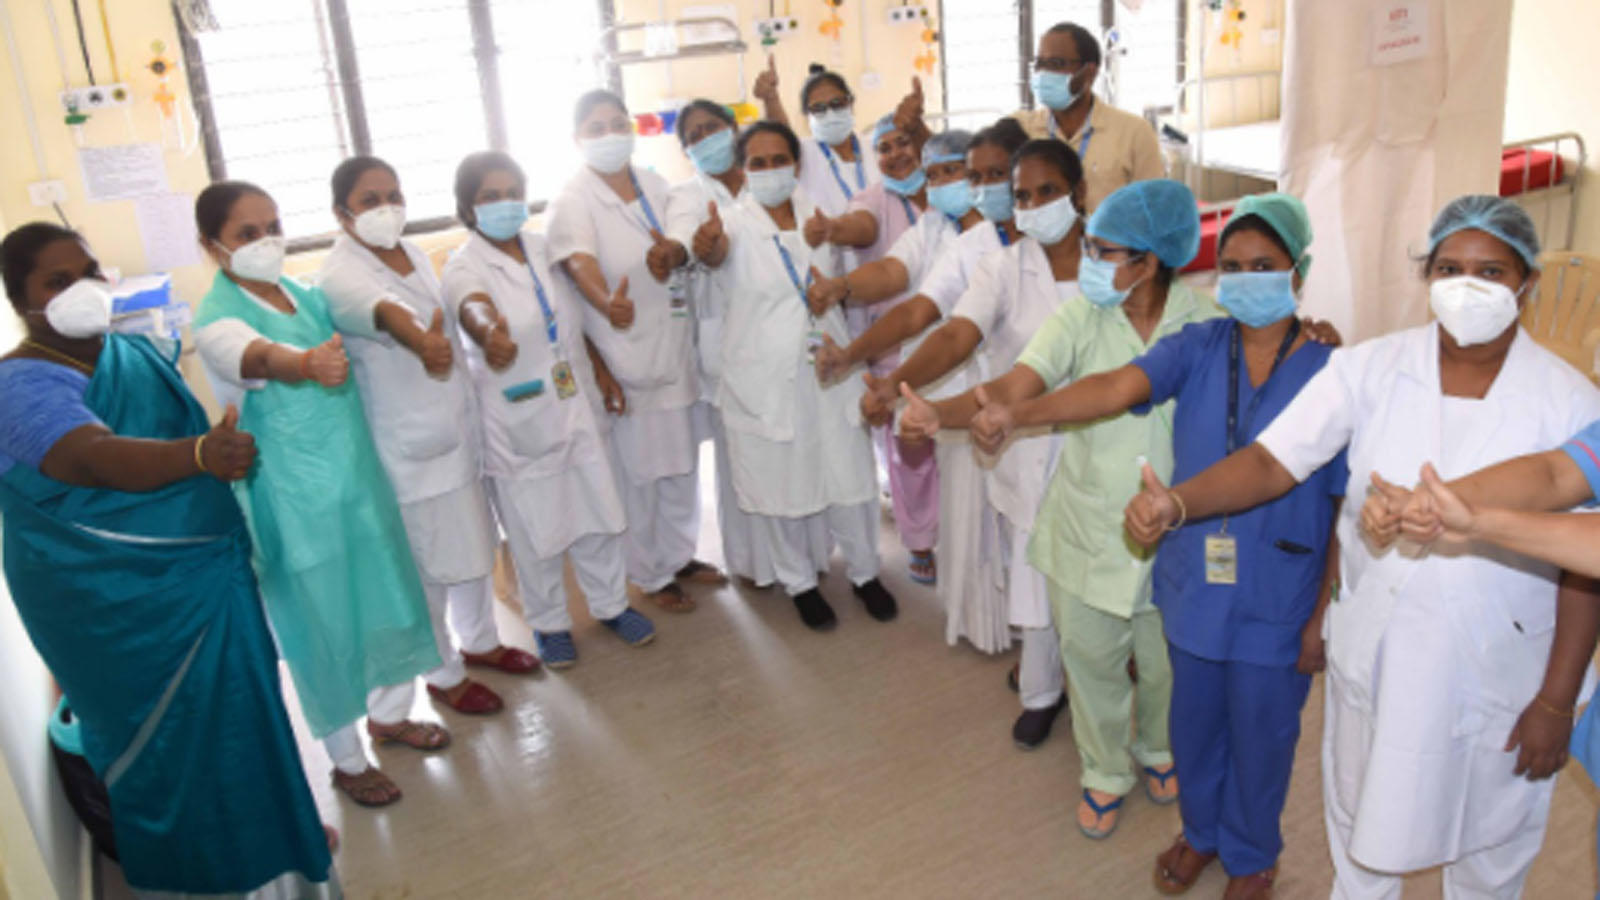 medical-staff-members-gear-up-for-covid-19-vaccination-drive-across-the-country